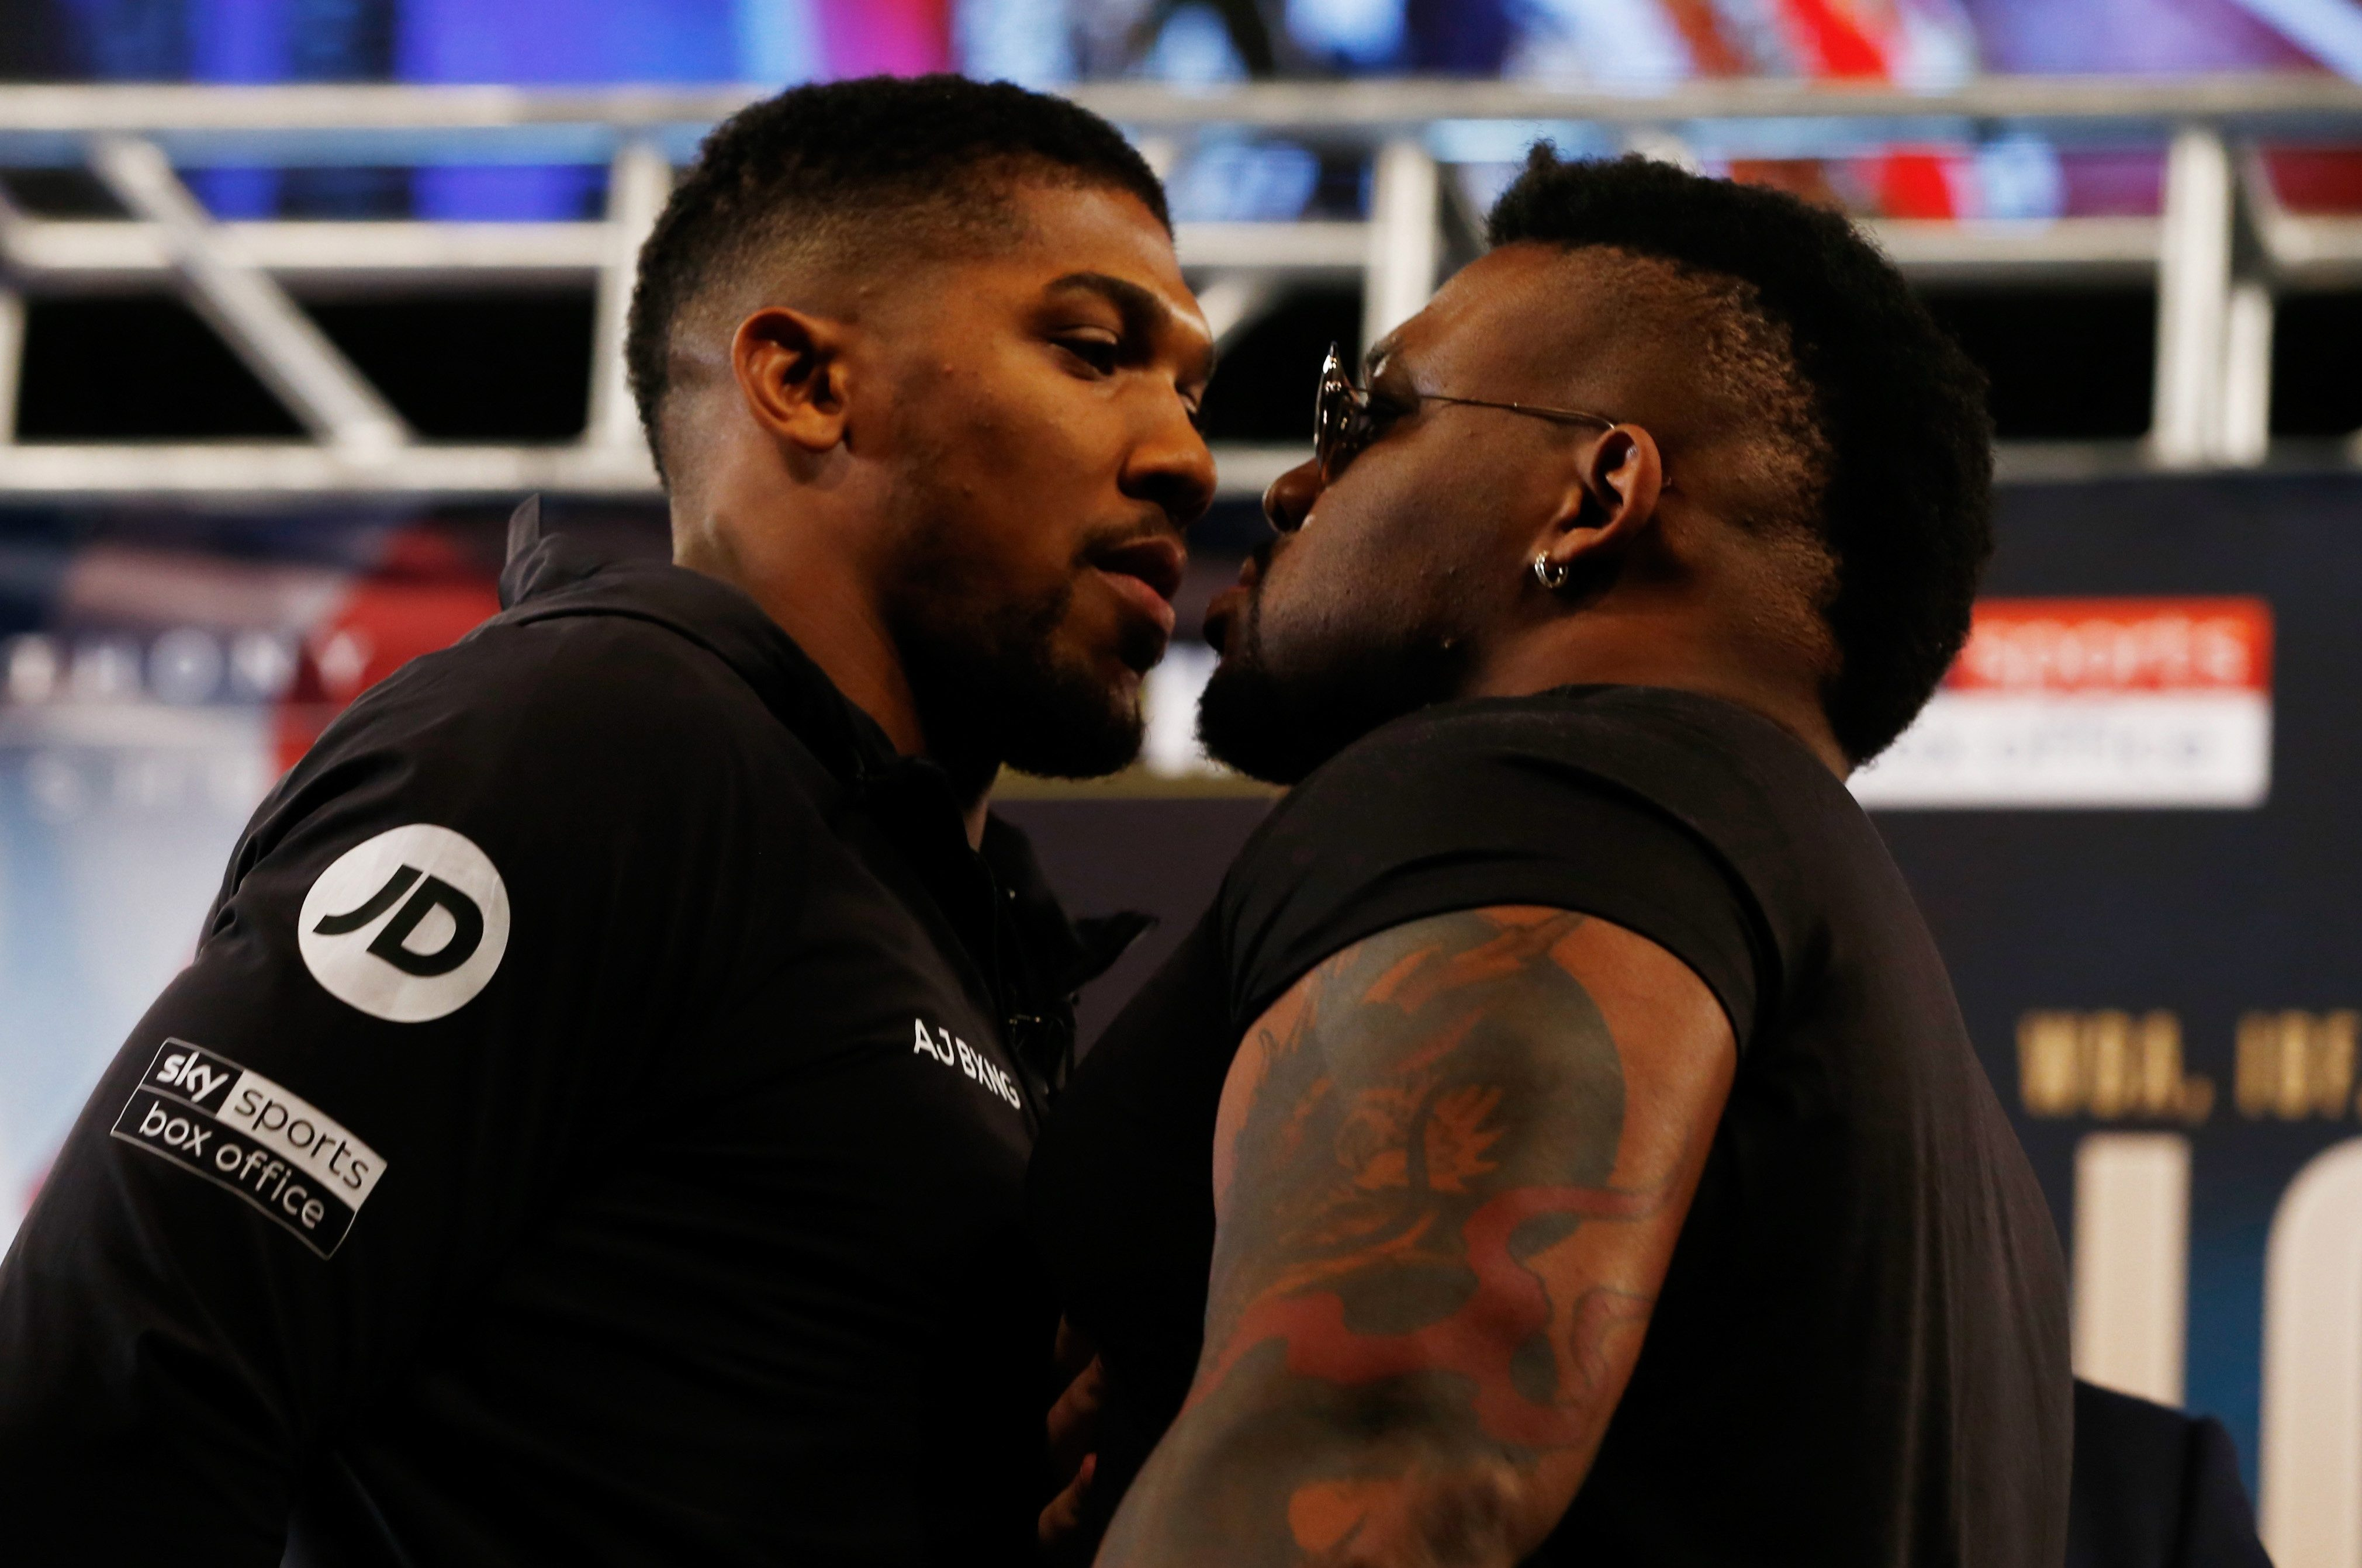 Joshua will make his Stateside debut on June 1, defending his WBA, IBF and WBO heavyweight titles against Miller at Madison Square Garden